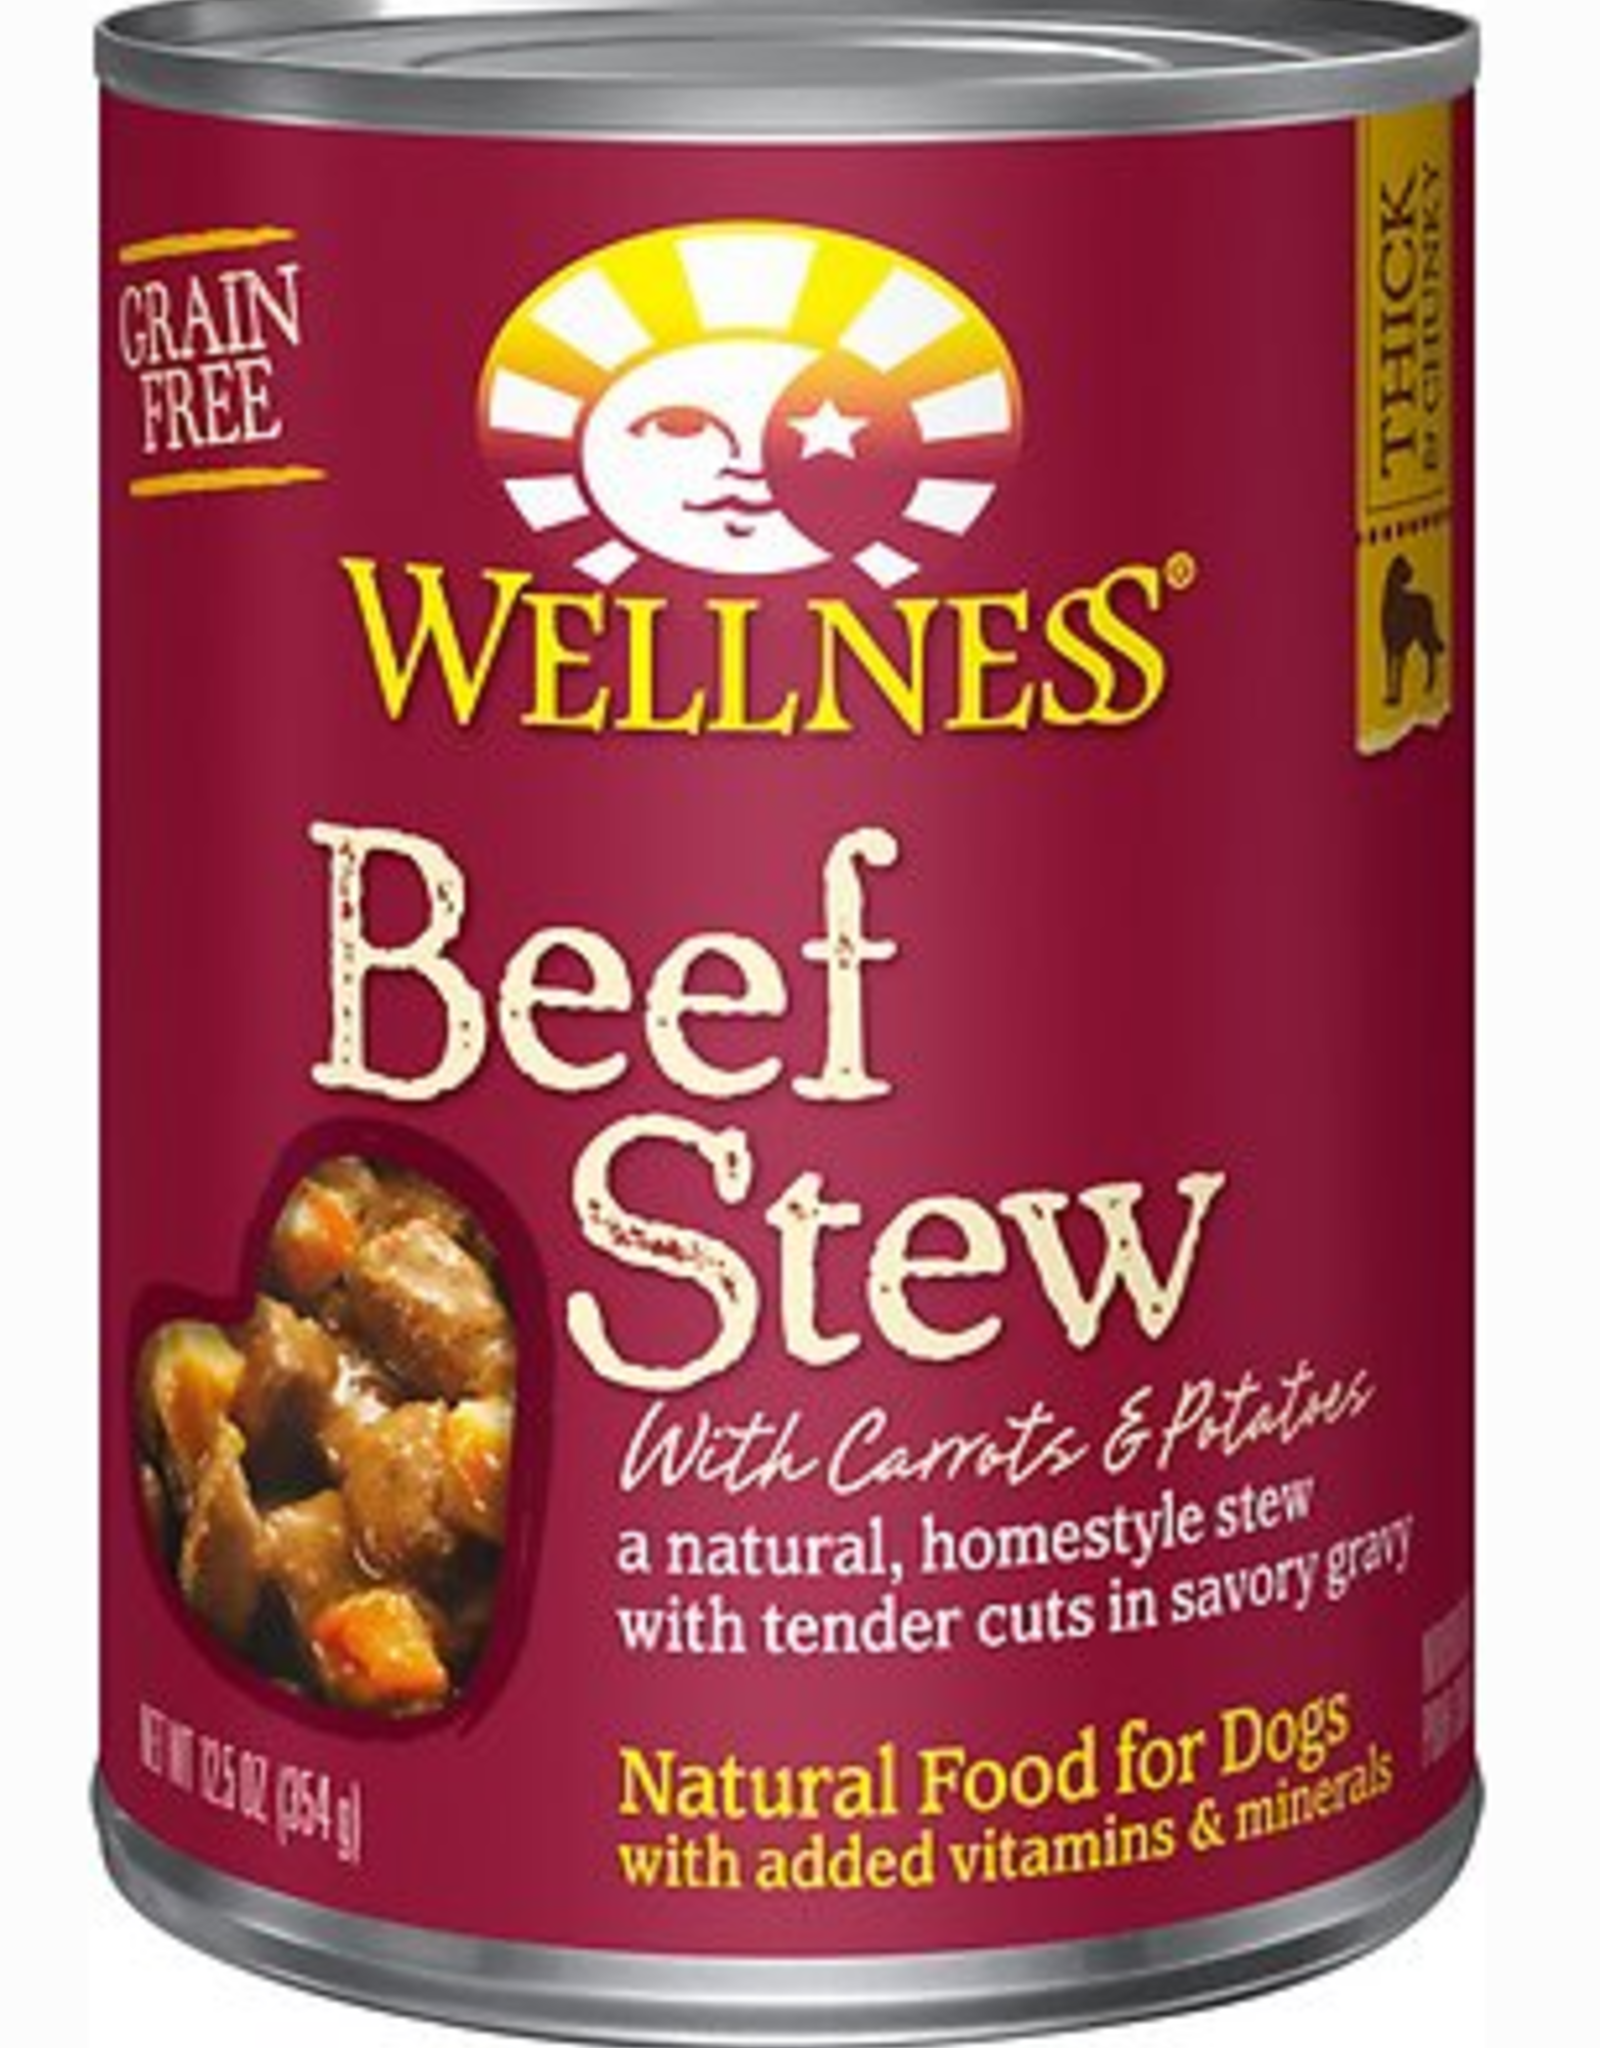 Wellness Beef Stew with Carrots & Potatoes Canned Dog Food, 12.5 oz.